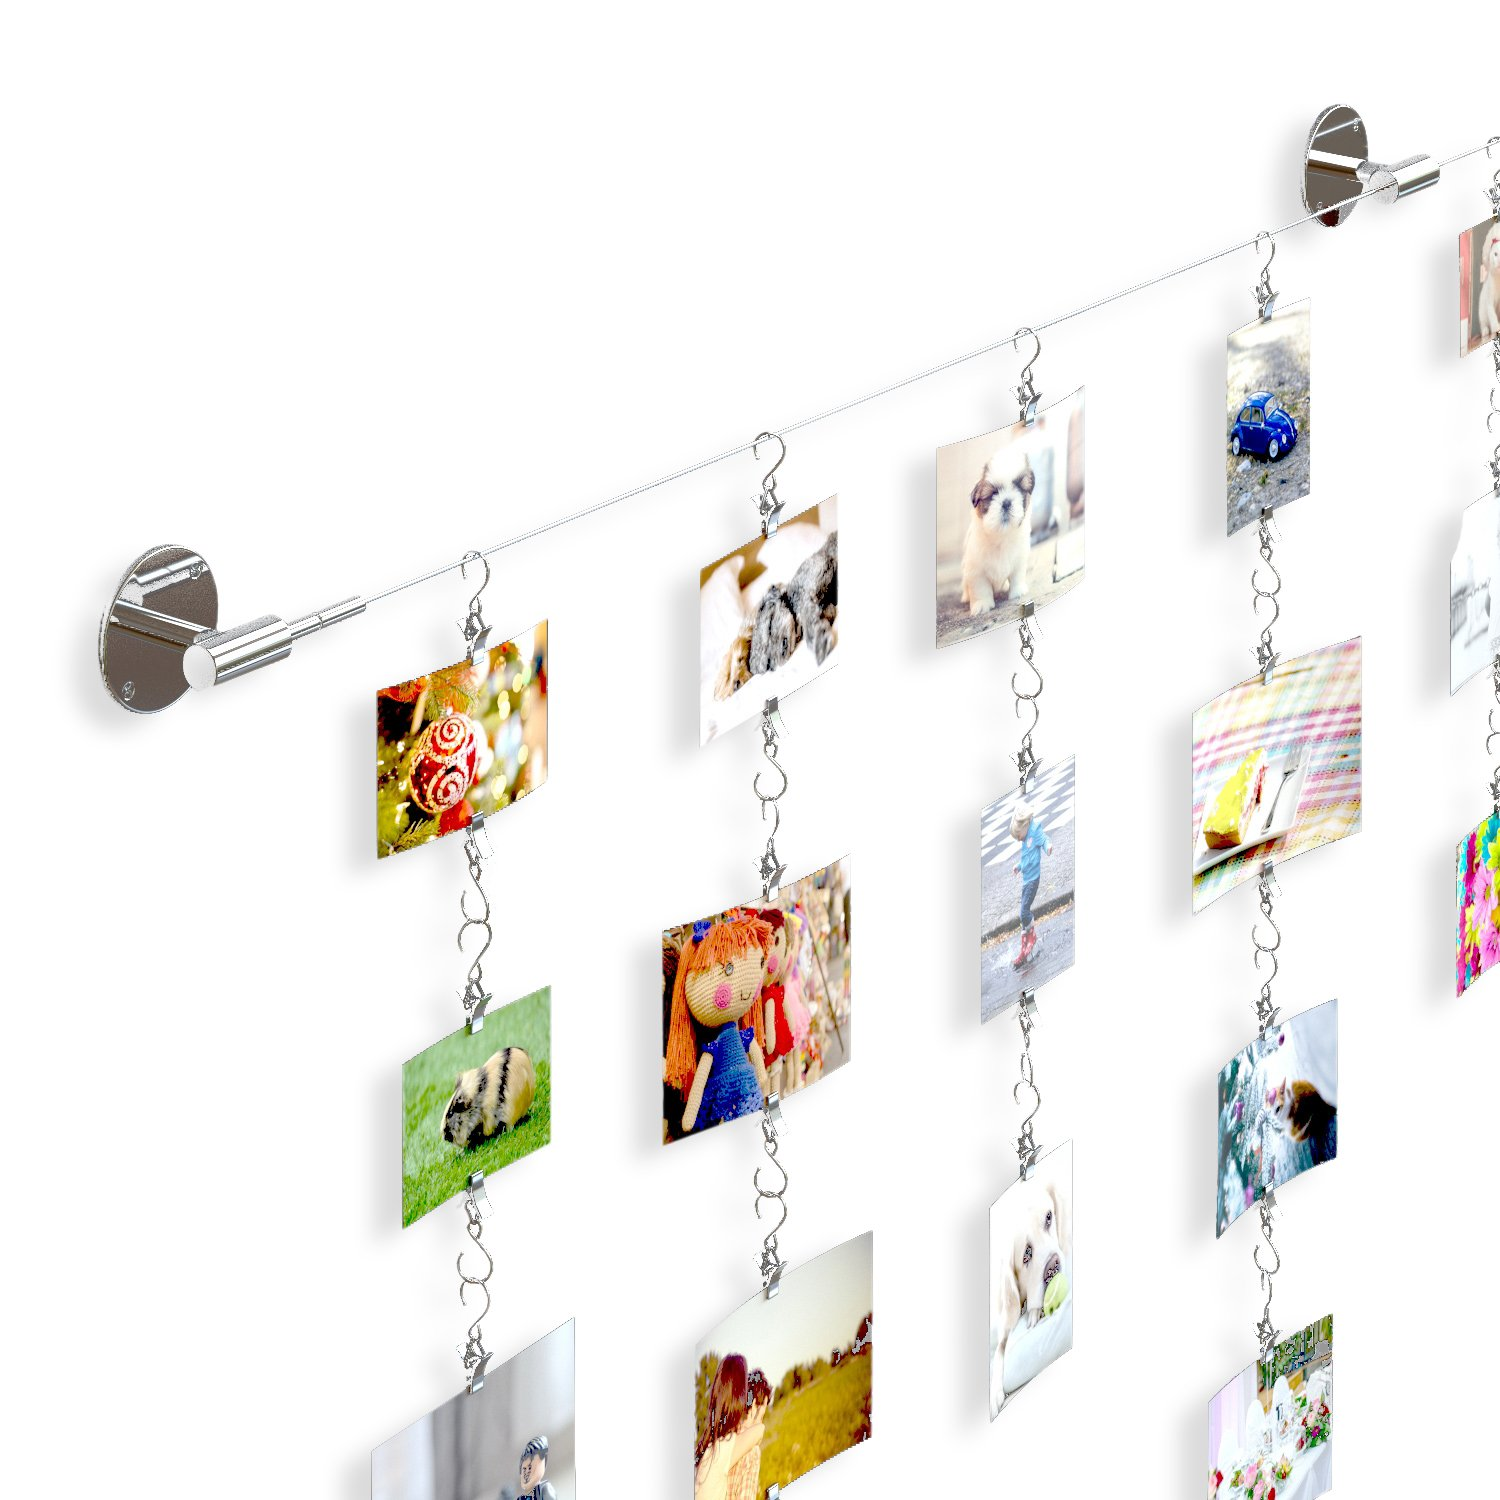 Soho Premium Expandable Chrome Photo Picture Collage Holder  Complete Hanger Set for Family Pictures Childrens Artwork and Painting Display Also Perfect for Photo Collage Projects by Fasthomegoods